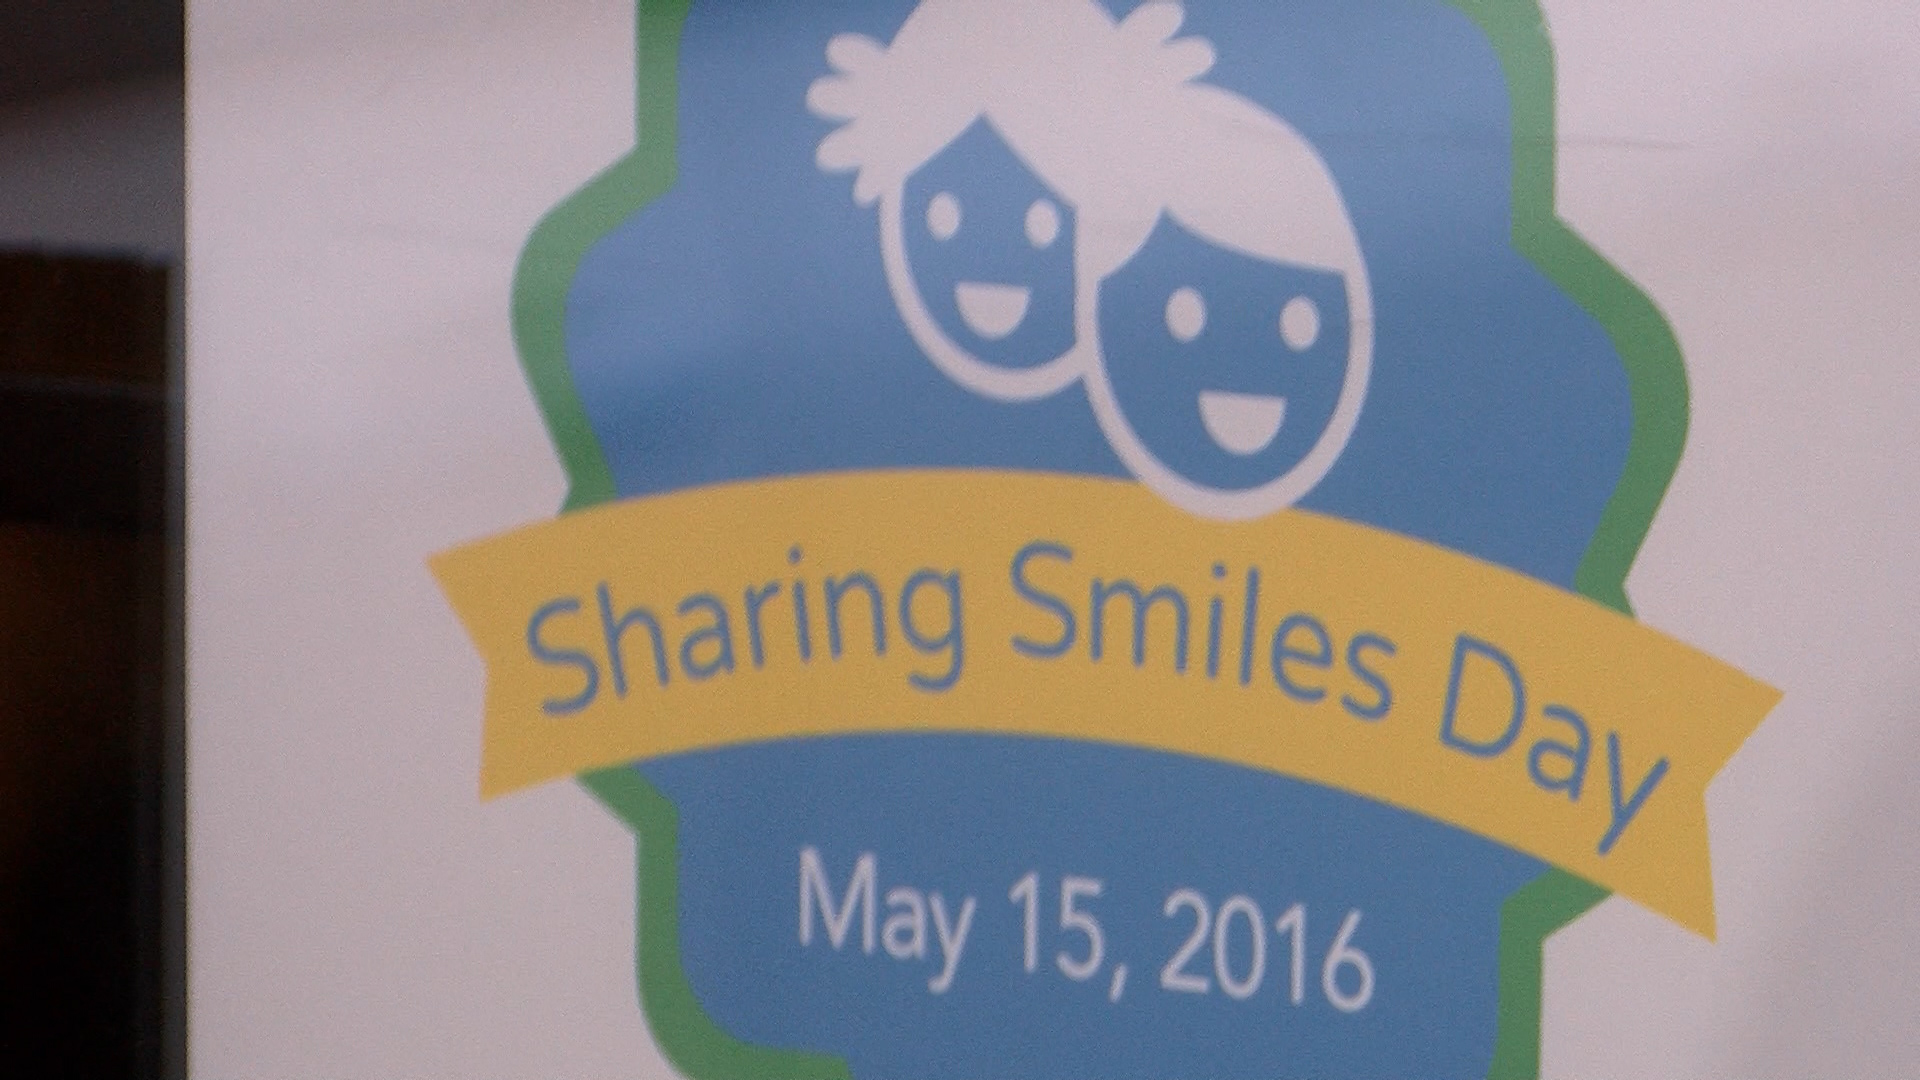 sharingsmilesday_1463340790797.jpg